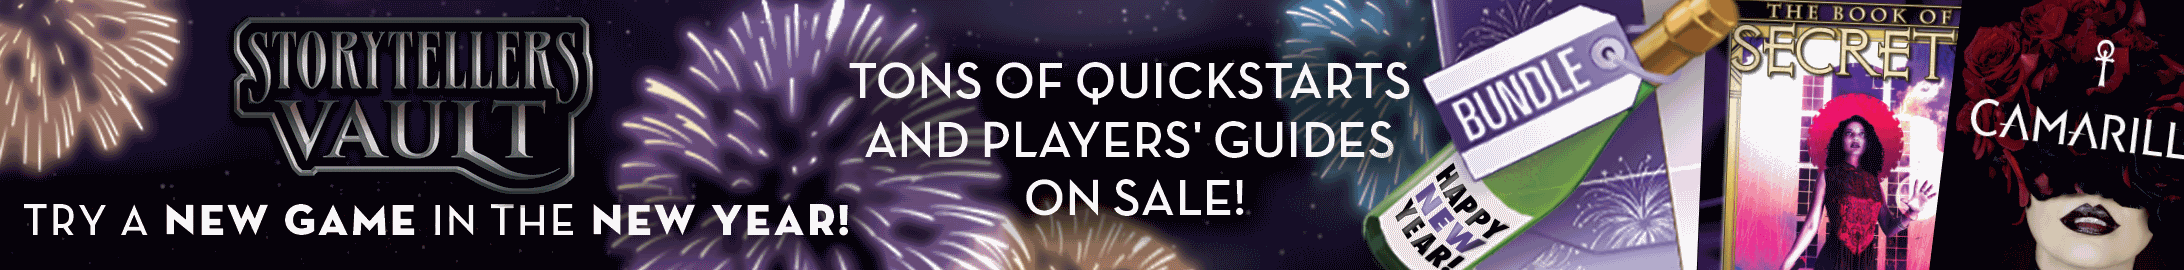 New Year, New Game sale @ Storytellers Vault